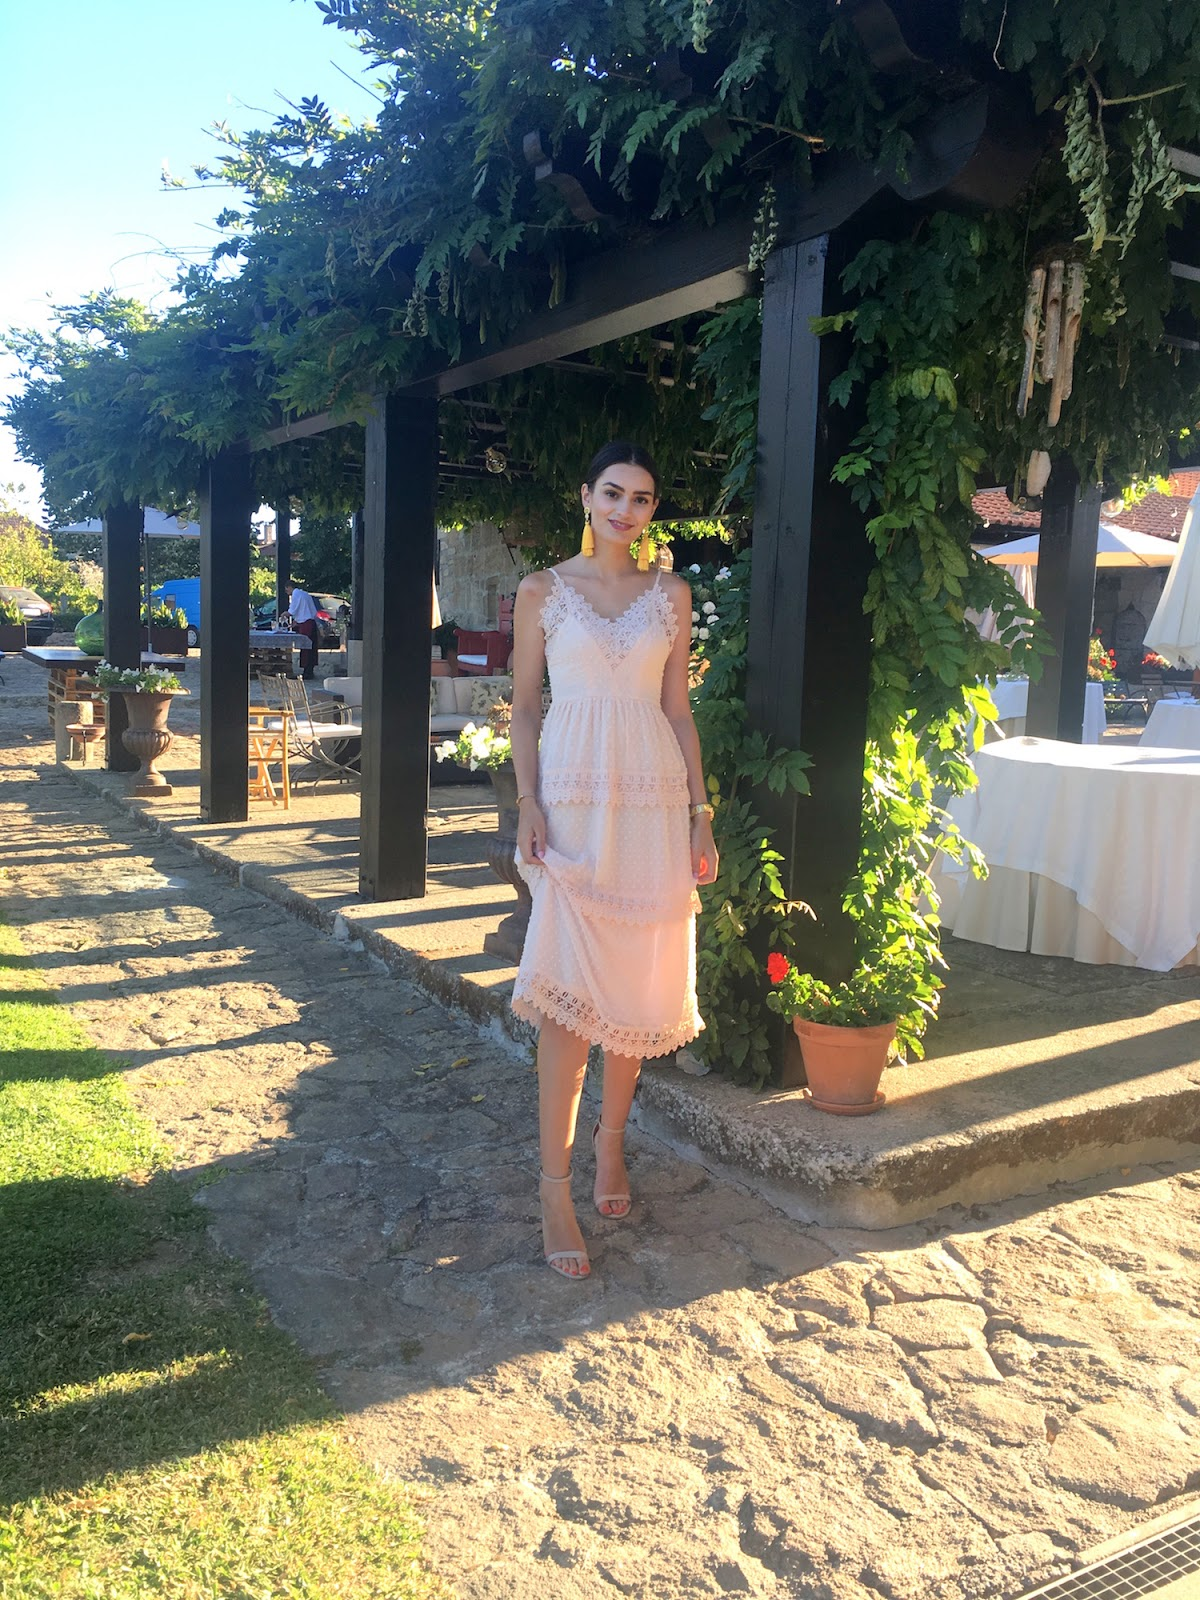 august summer wedding guest portugal